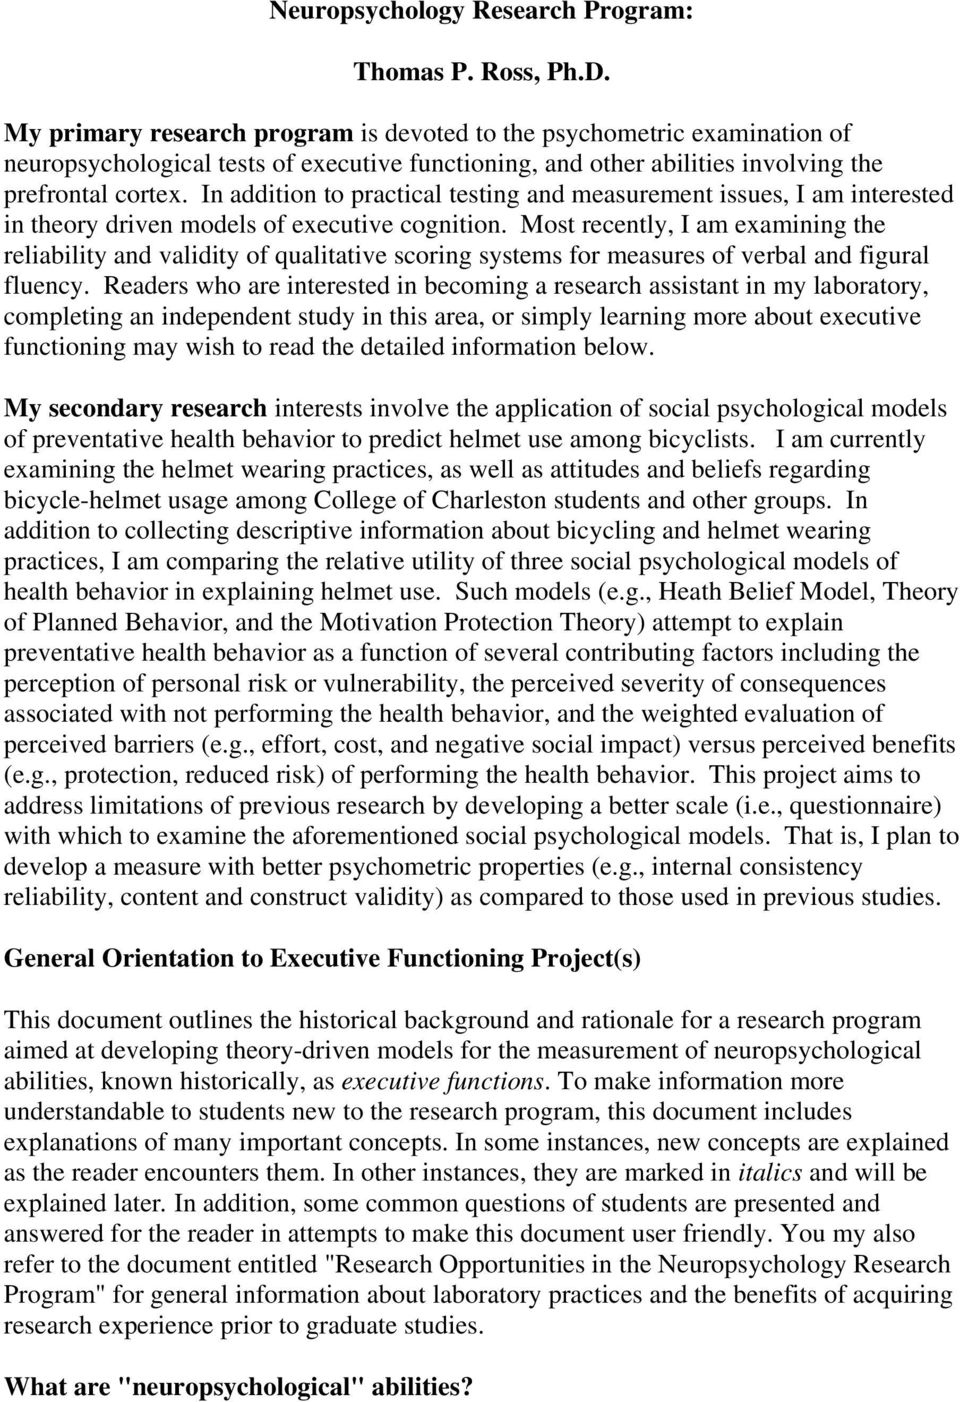 In addition to practical testing and measurement issues, I am interested in theory driven models of executive cognition.